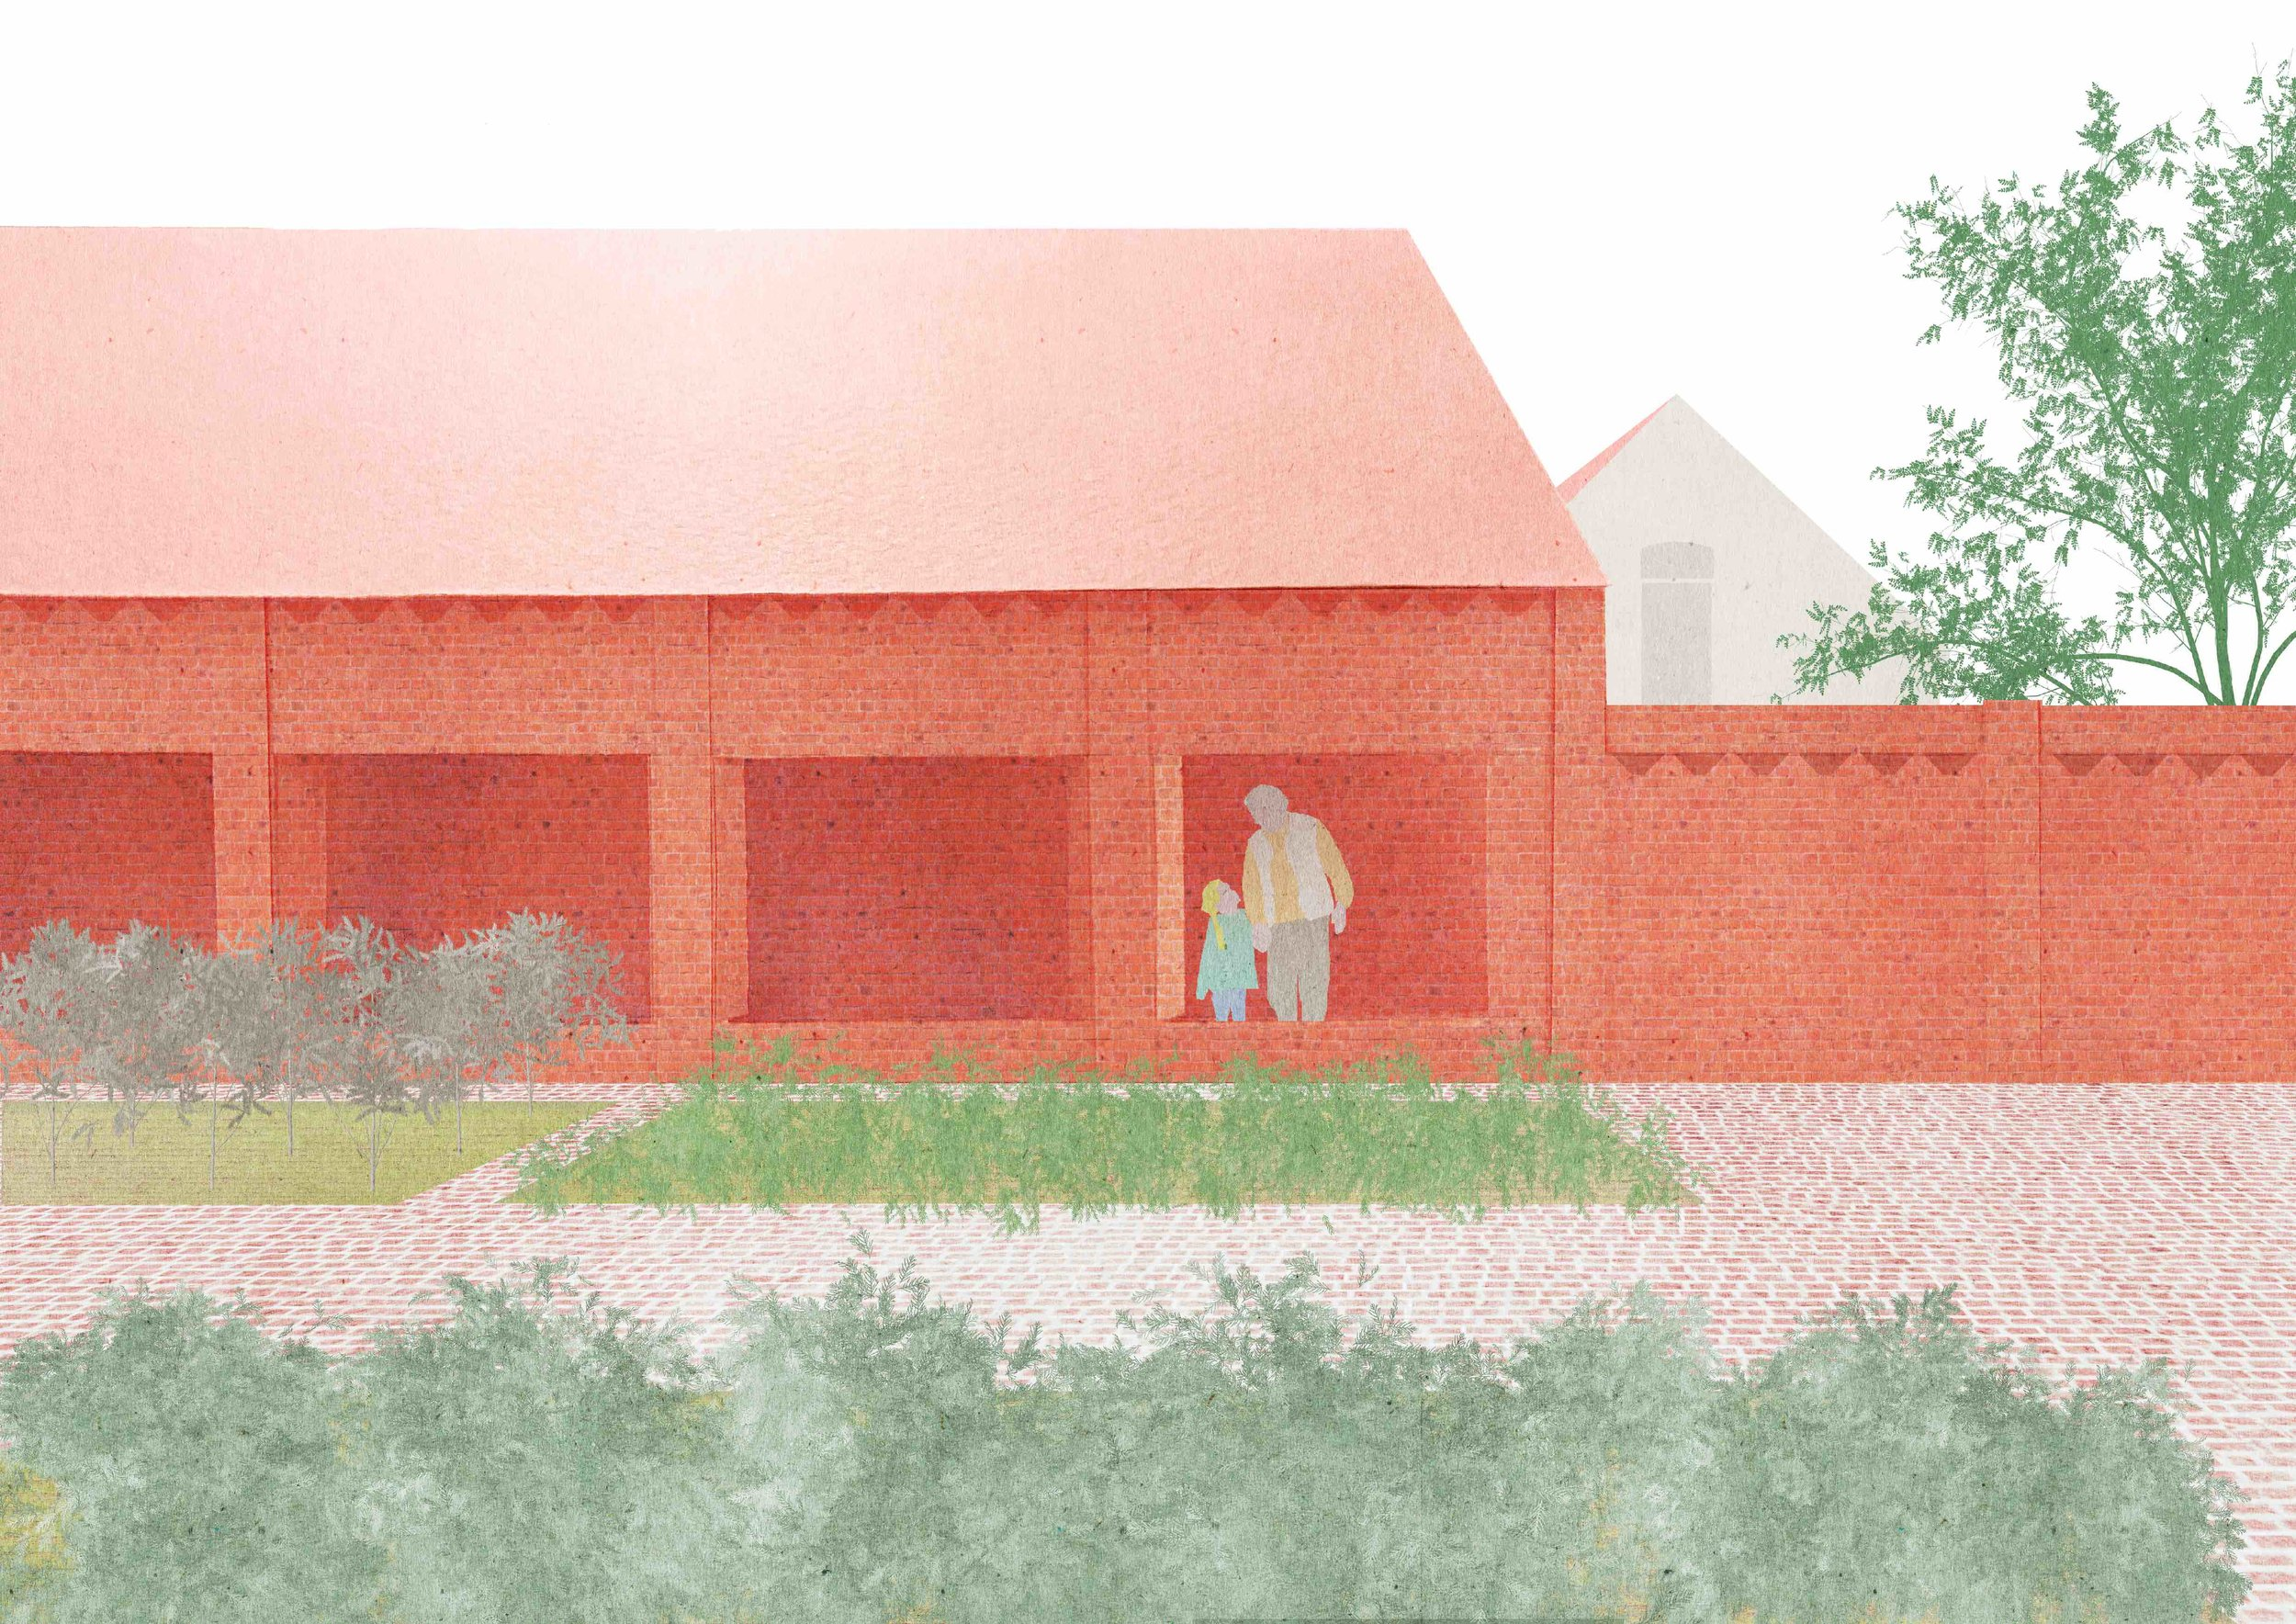 Tomas Dirrix winner of the Meesterproef 2017.  In a competition organised by the Atelier Vlaams Bouwmeester Tomas Dirrix was selected as winner with a plan for the conversion of an enclosed, 100 meter long farm in the impressive landscape of the Wortel-Colony of Benevolence, established in 1822. While maintaining the original closed character of the complex, the brief for a distillery and tasting rooms asked for a strong relationship with the surrounding herb garden and landscape. The project embraces this paradox, and proposes to actually double the existing external wall, through which also a new public-route is established.